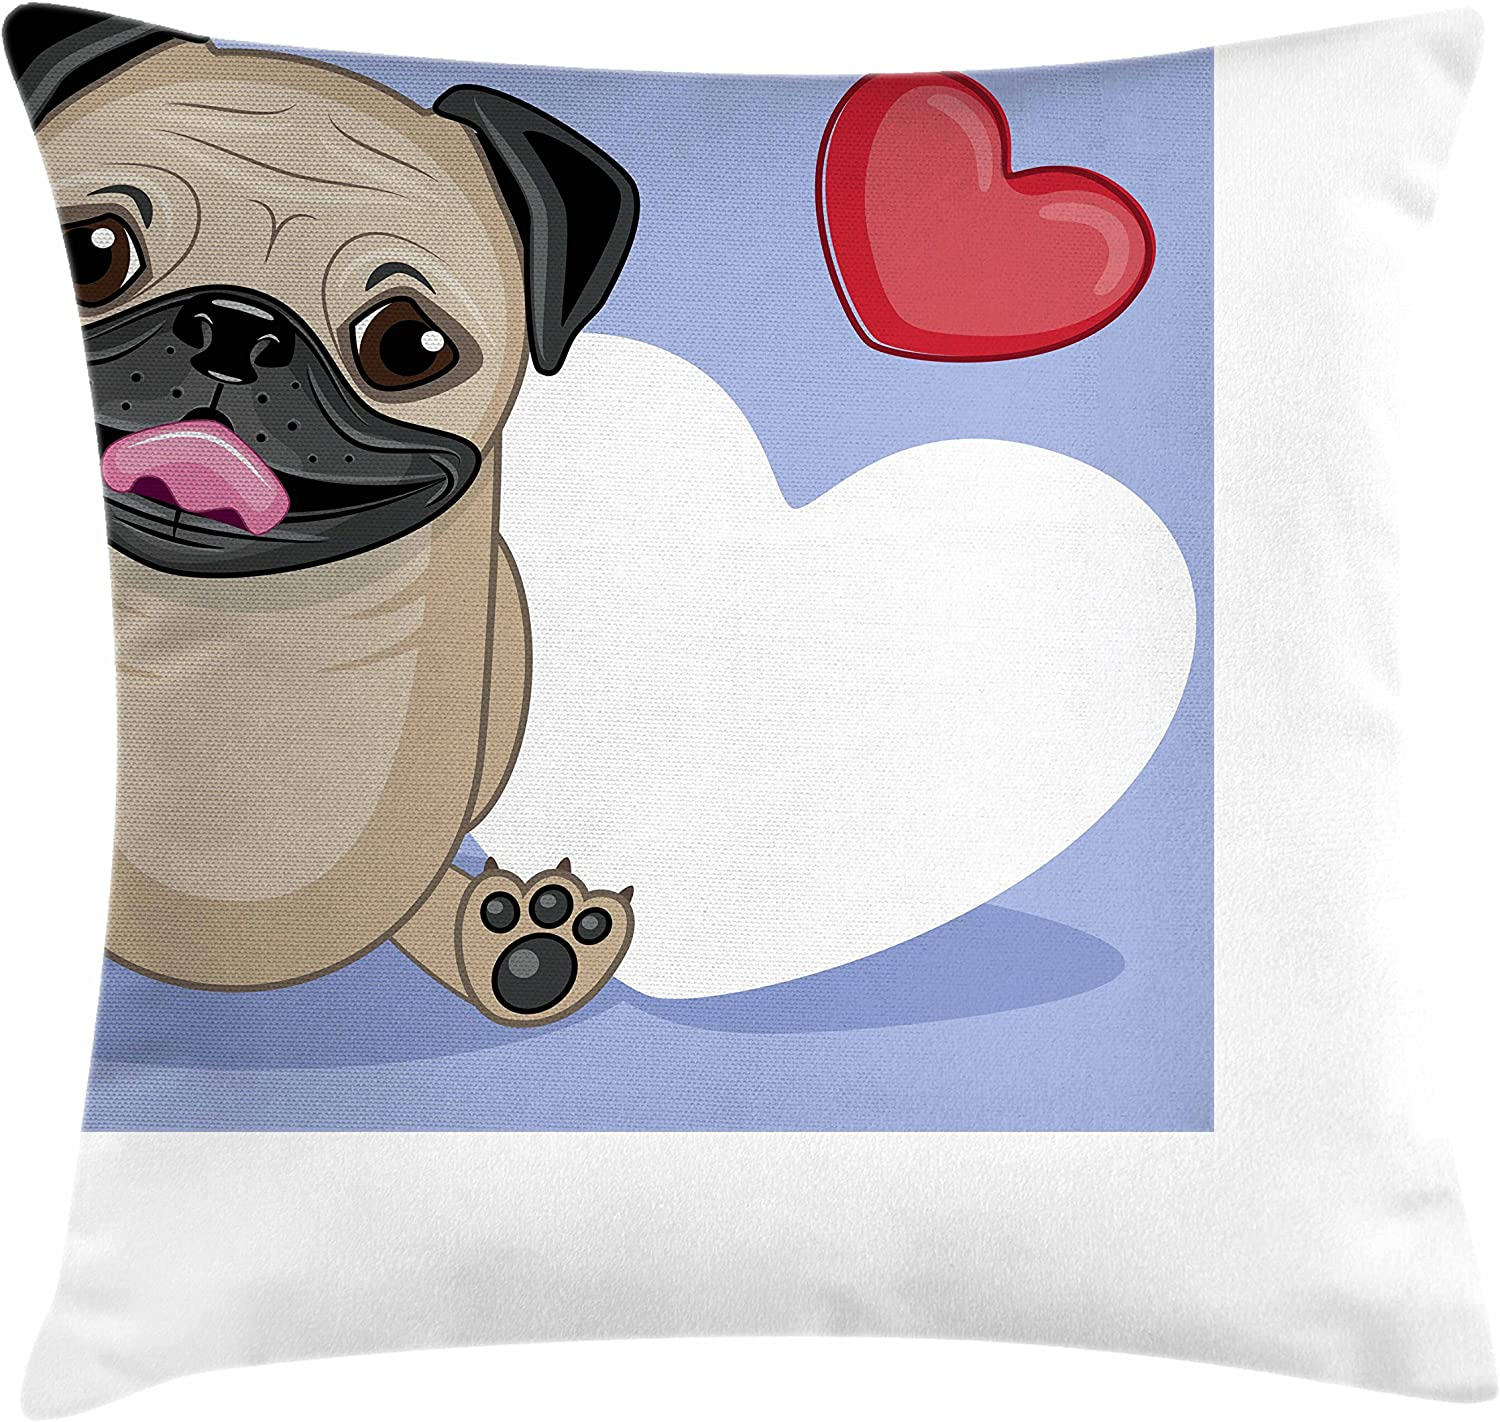 Amazon Com Ambesonne Pug Throw Pillow Cushion Cover Happy Dog Licking Its Lips With 3 Red And Big White Heart Love Theme Decorative Square Accent Pillow Case 20 X 20 Pale Brown Red